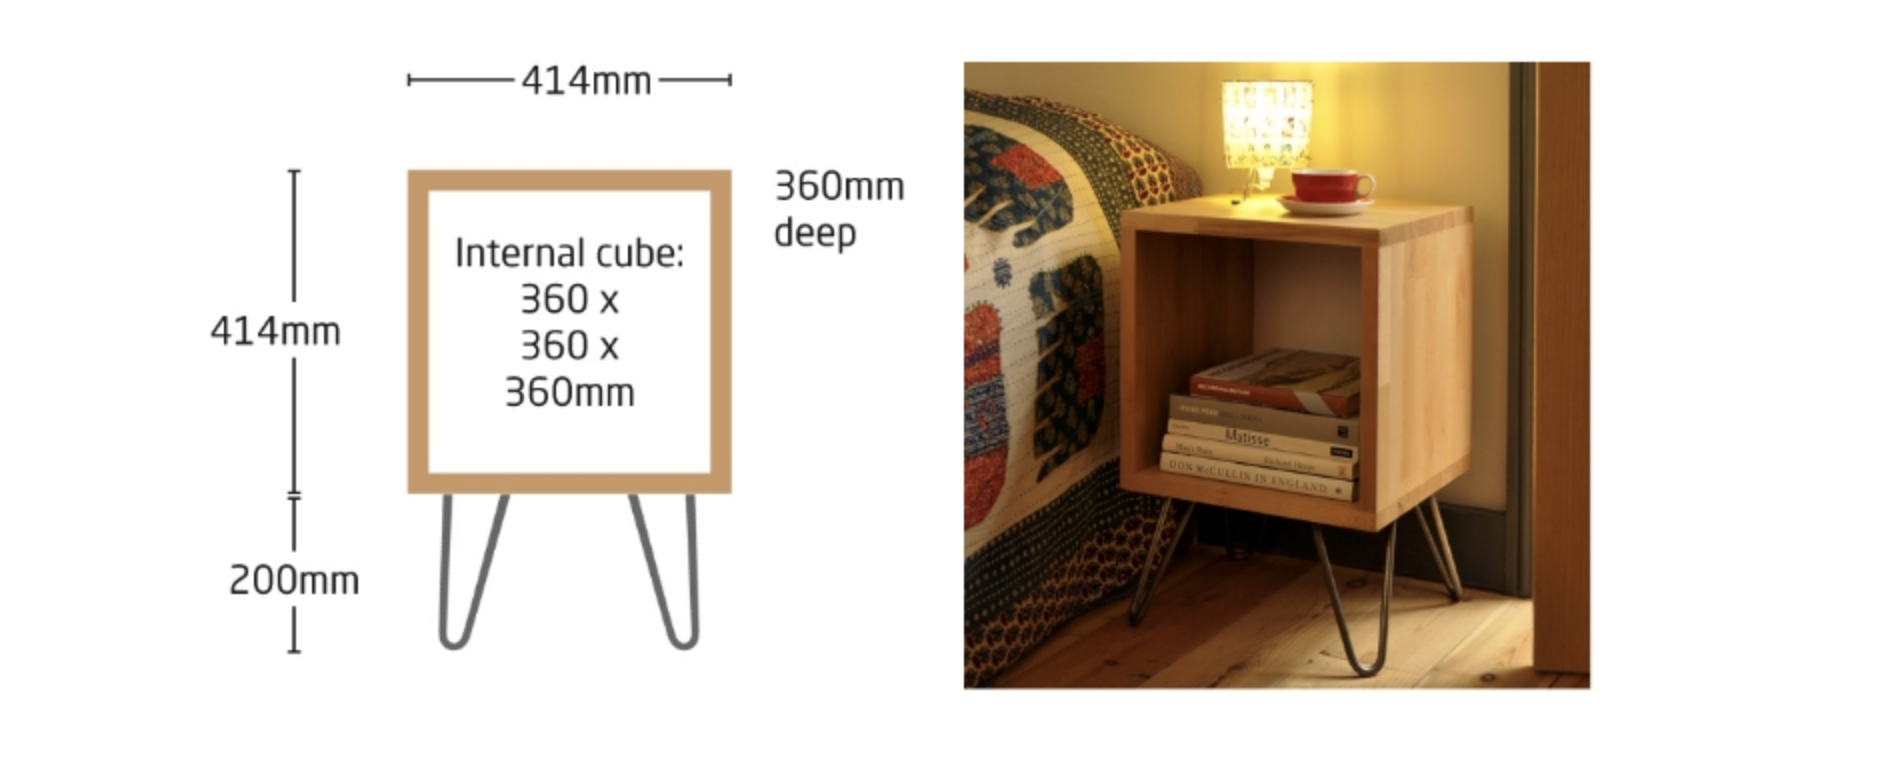 Cubed 'Mono'. Price in solid beech with hairpin legs £275.  Add a shelf for £45 and/or a door for £75 - both in solid beech.